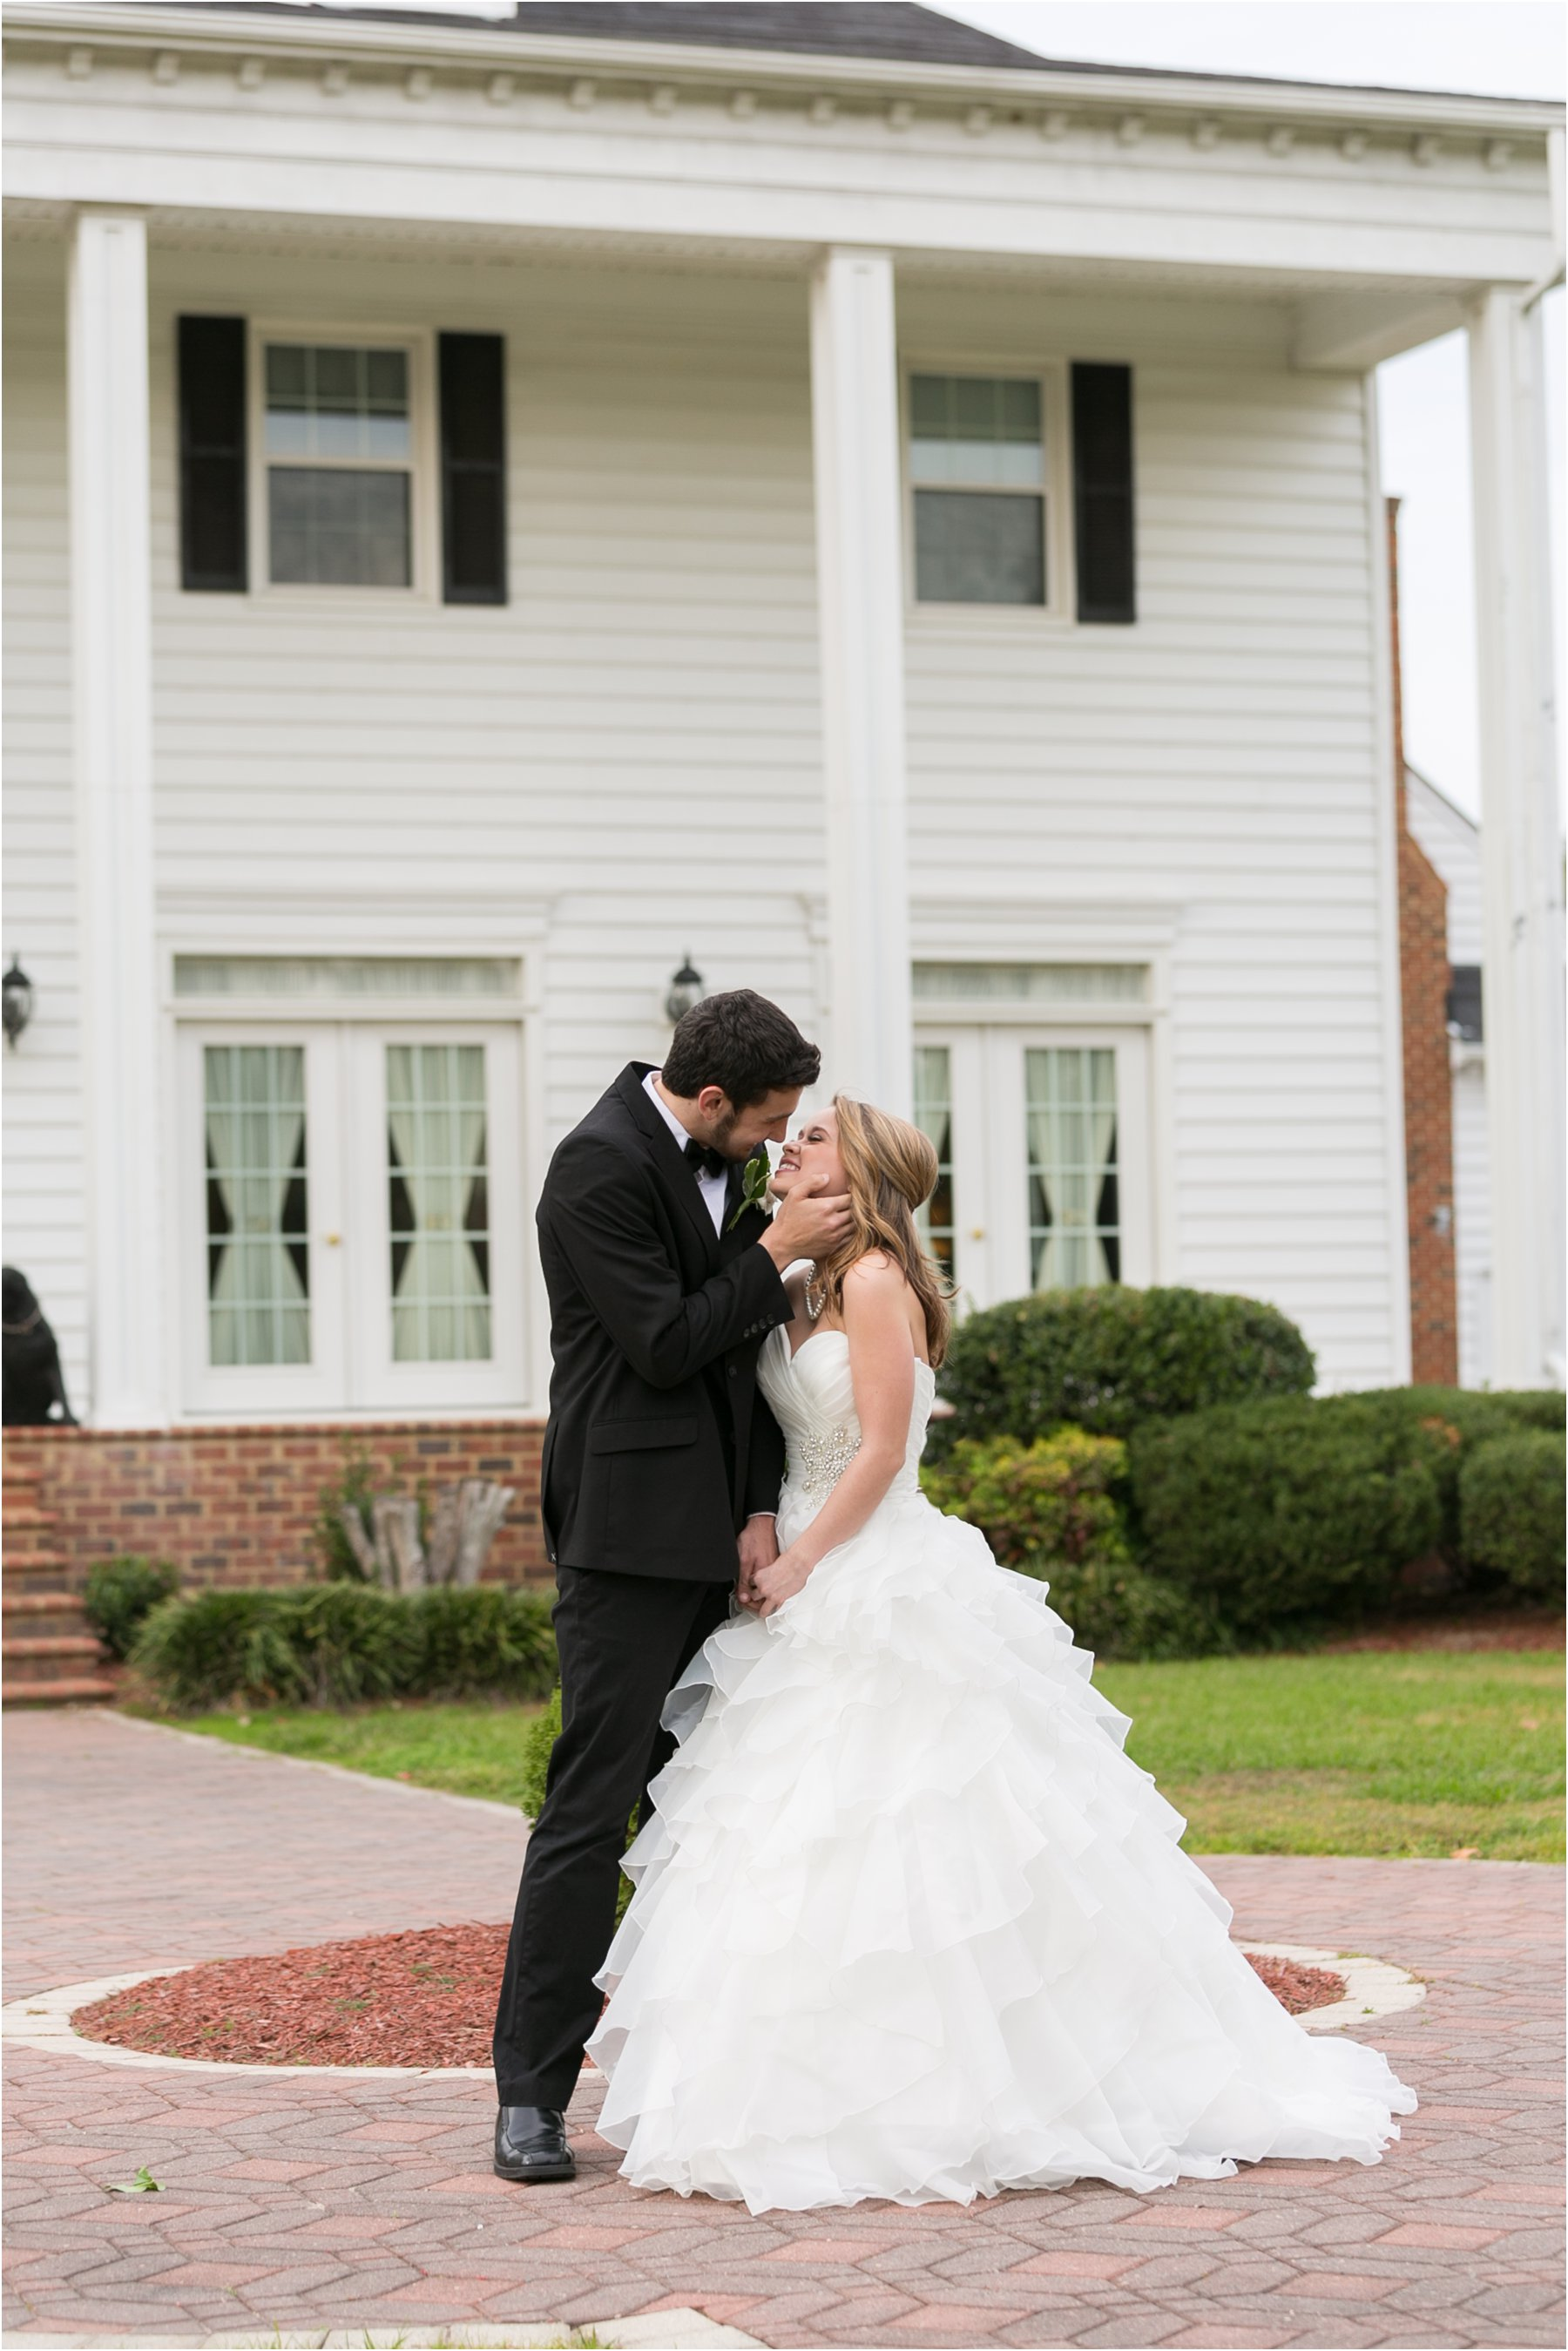 Holly_Ridge_Manor_Wedding_Photography_Jessica_Ryan_Photography_virginia_virginia_beach_0256